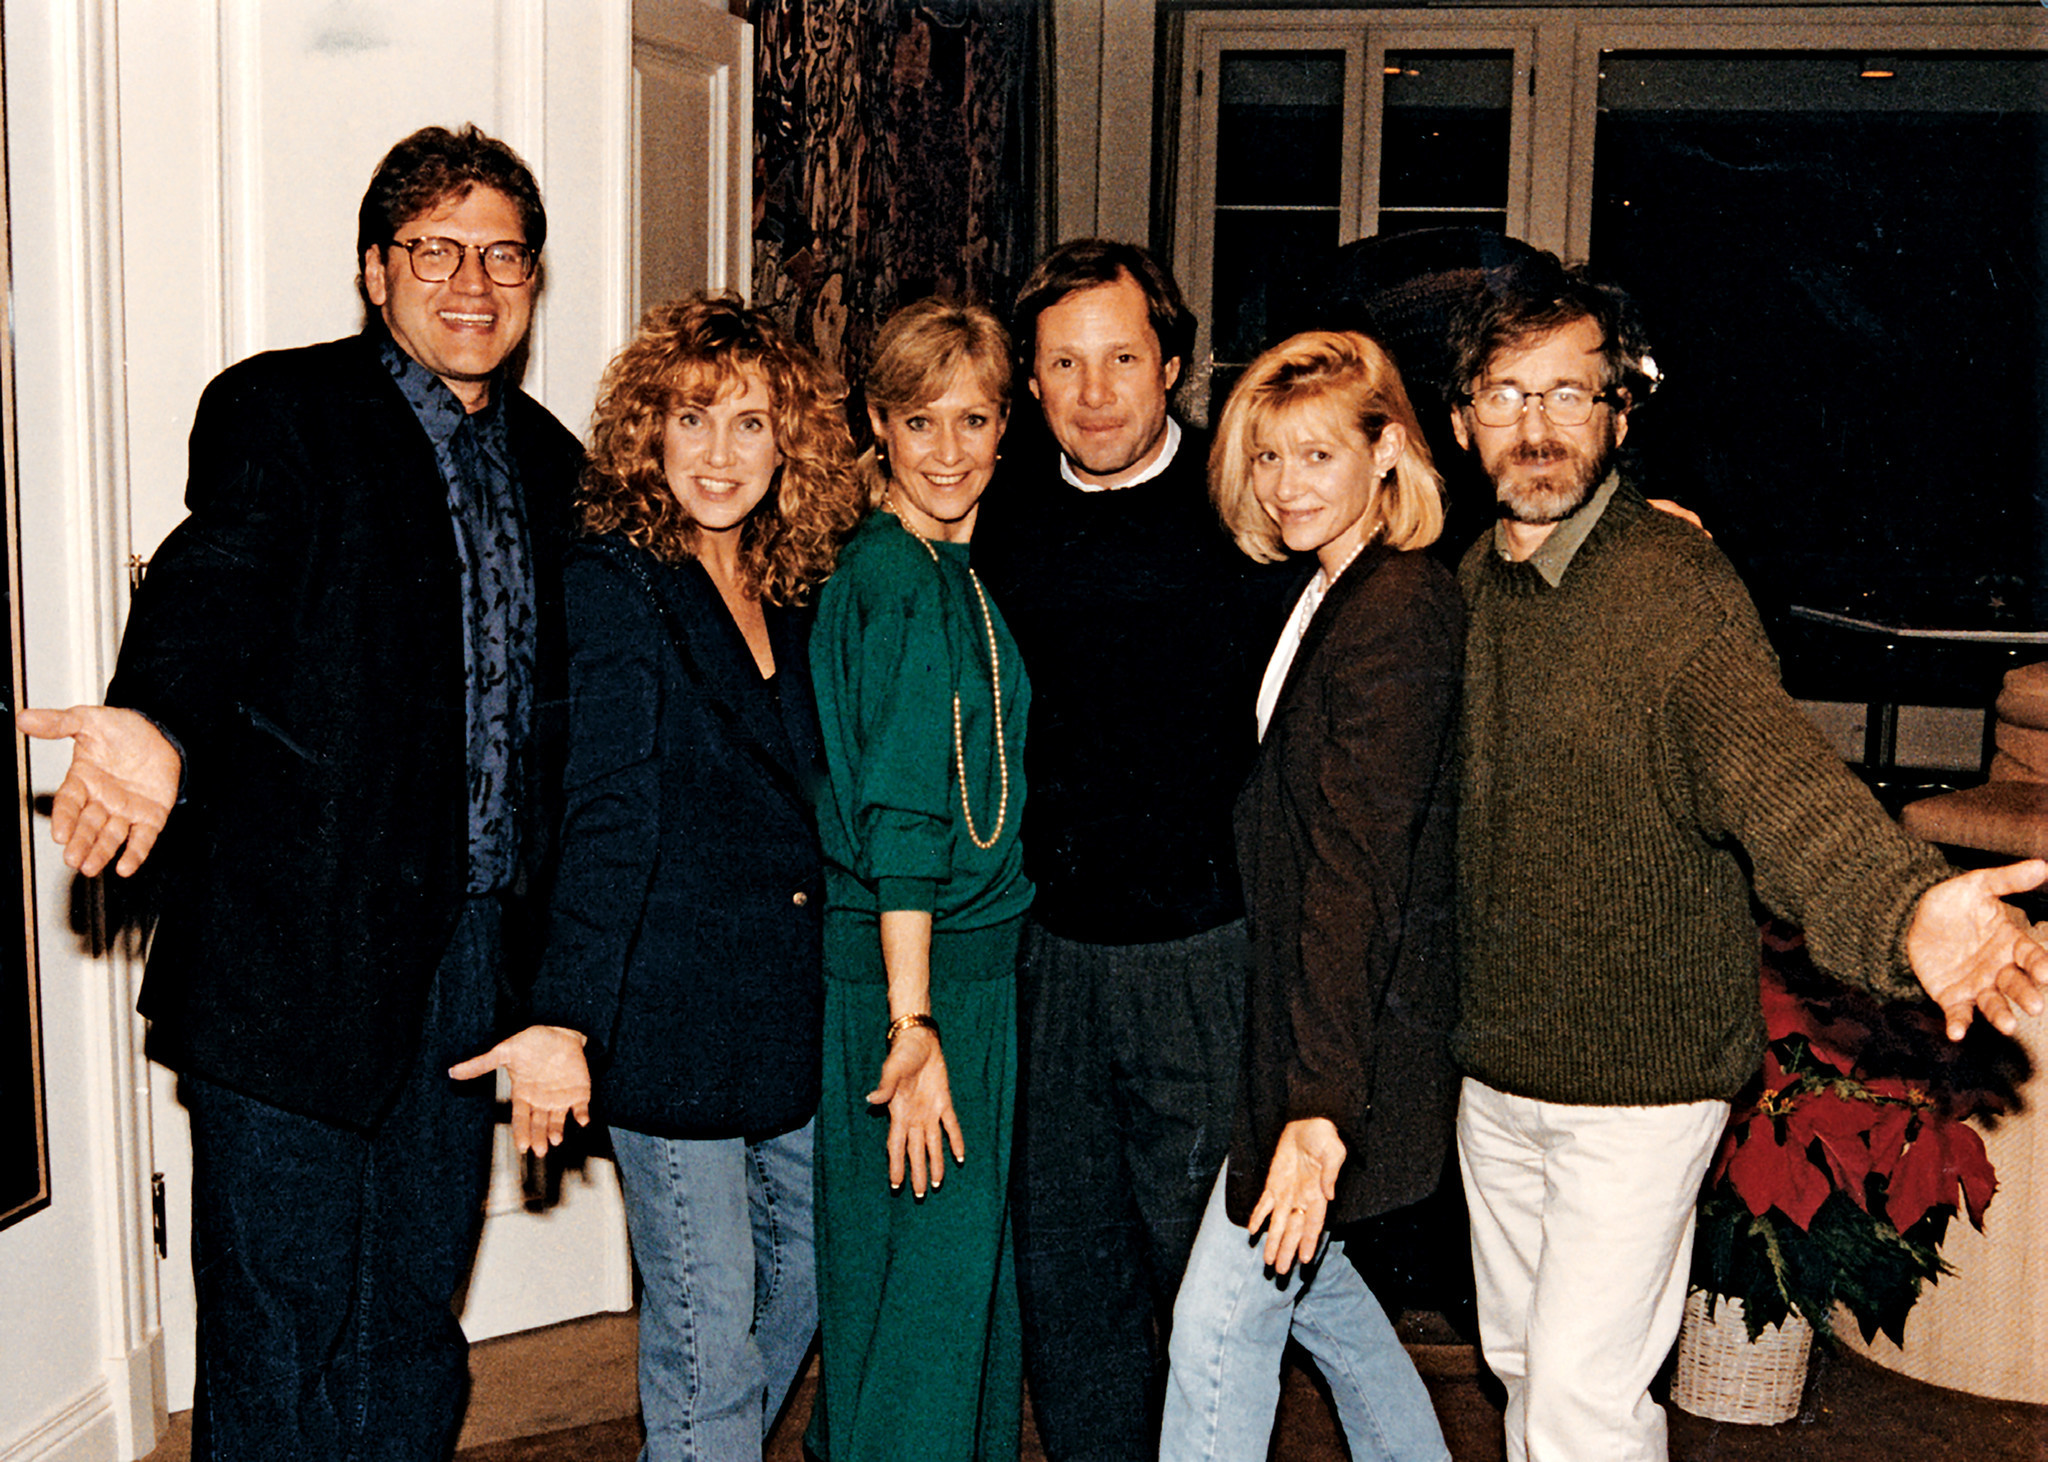 Judy and Mike Ovitz (center) with Robert and Mary Ellen Zemeckis (left) and Kate Capshaw and Steven Spielberg, celebrating nothing in particular.